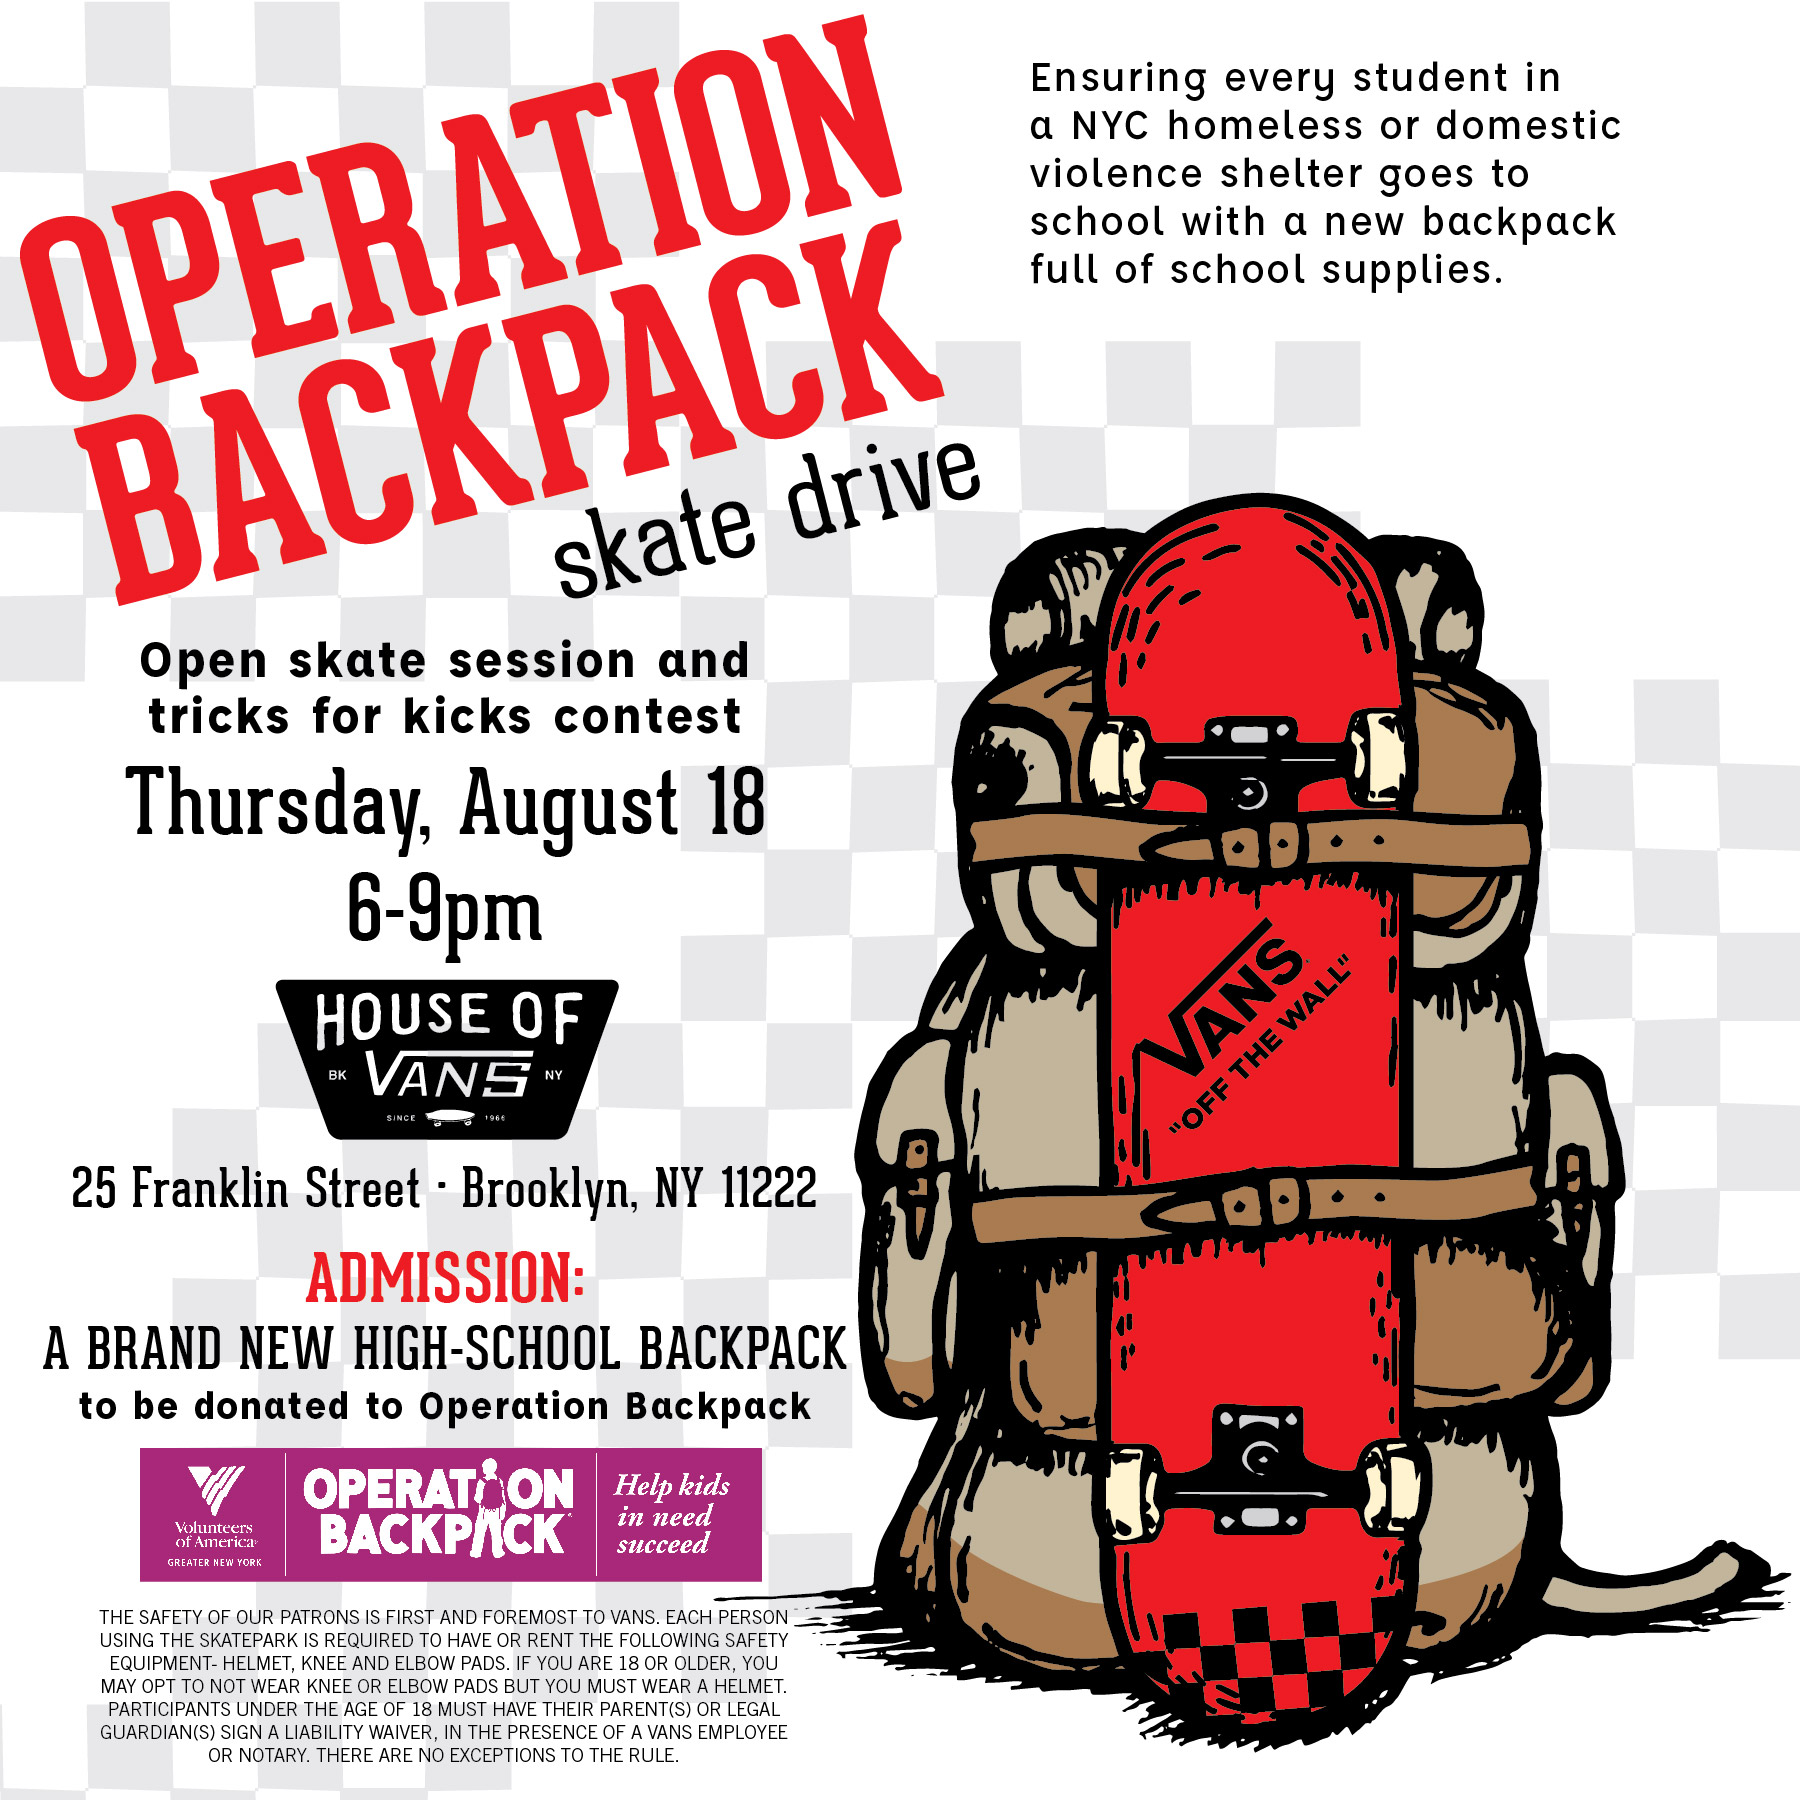 Tonight: Operation Backpack Skate Drive @HOV (2016)